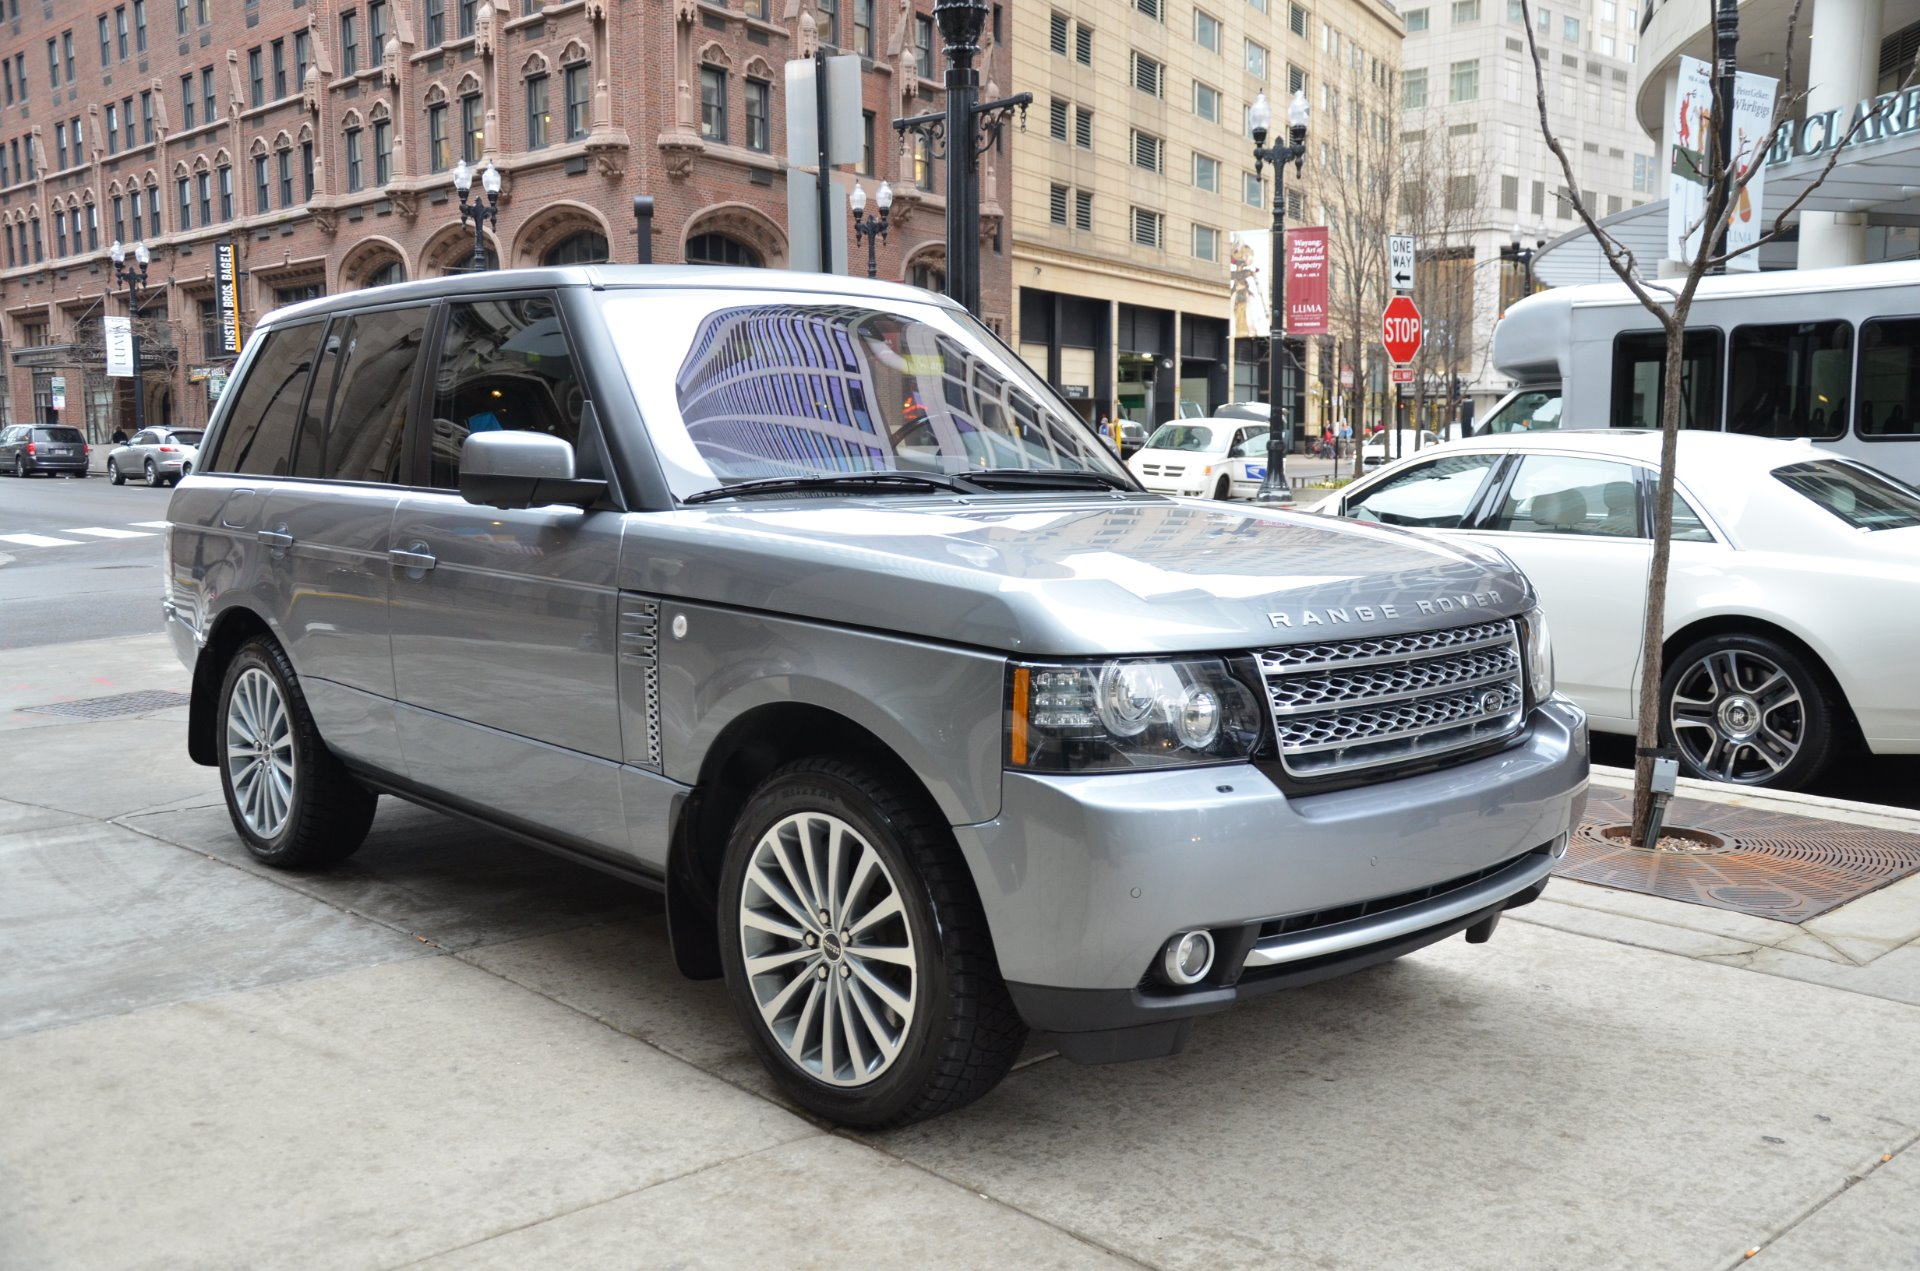 2012 land rover range rover supercharged stock gc roland147 for sale near chicago il il. Black Bedroom Furniture Sets. Home Design Ideas